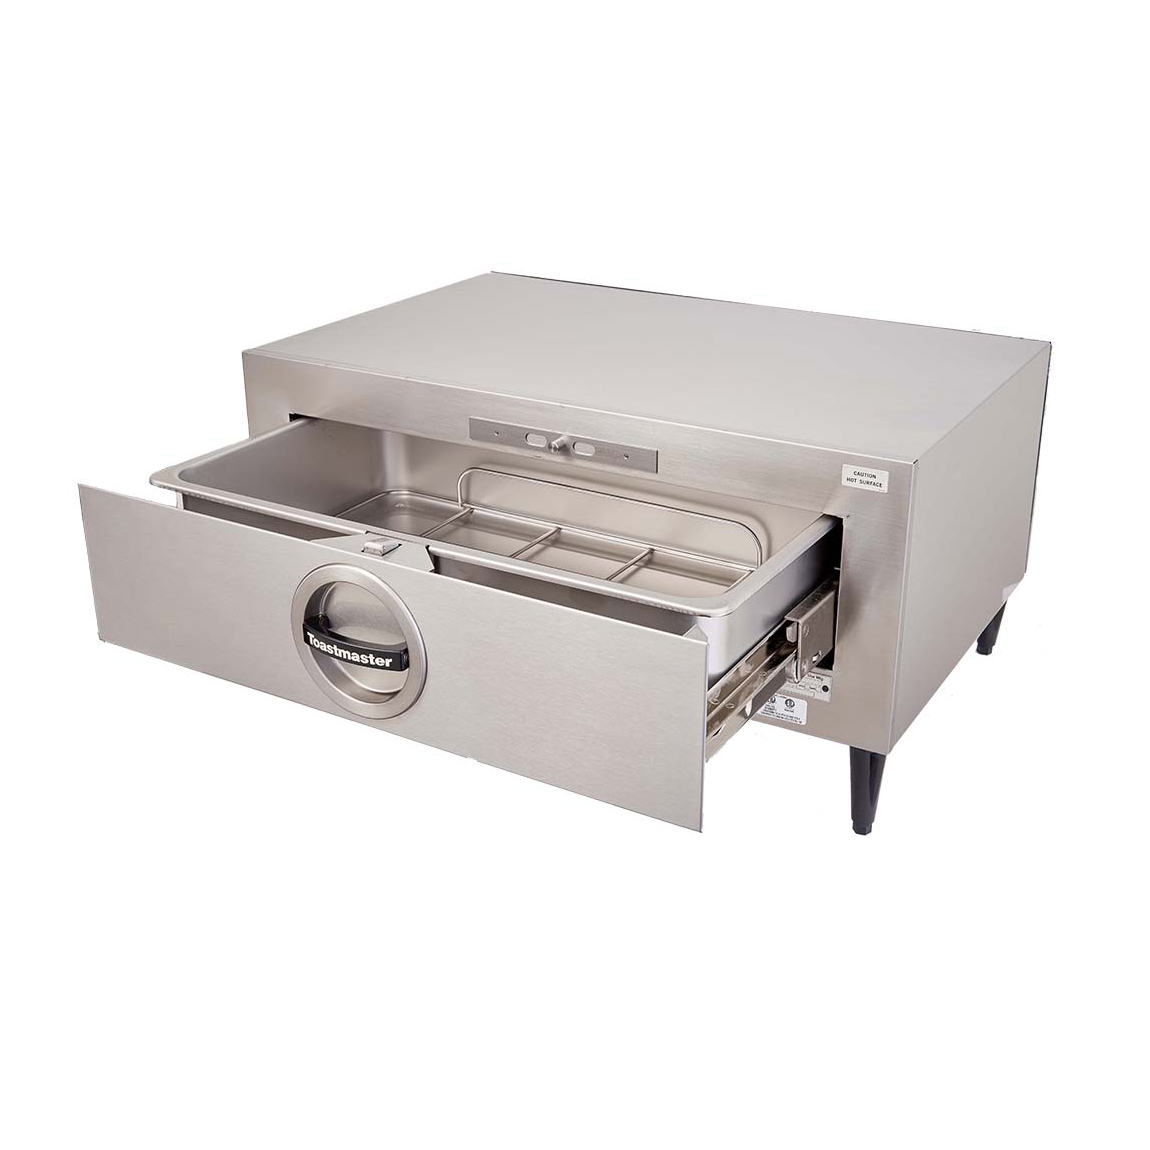 Toastmaster 3A81DT09 warming drawer, free standing